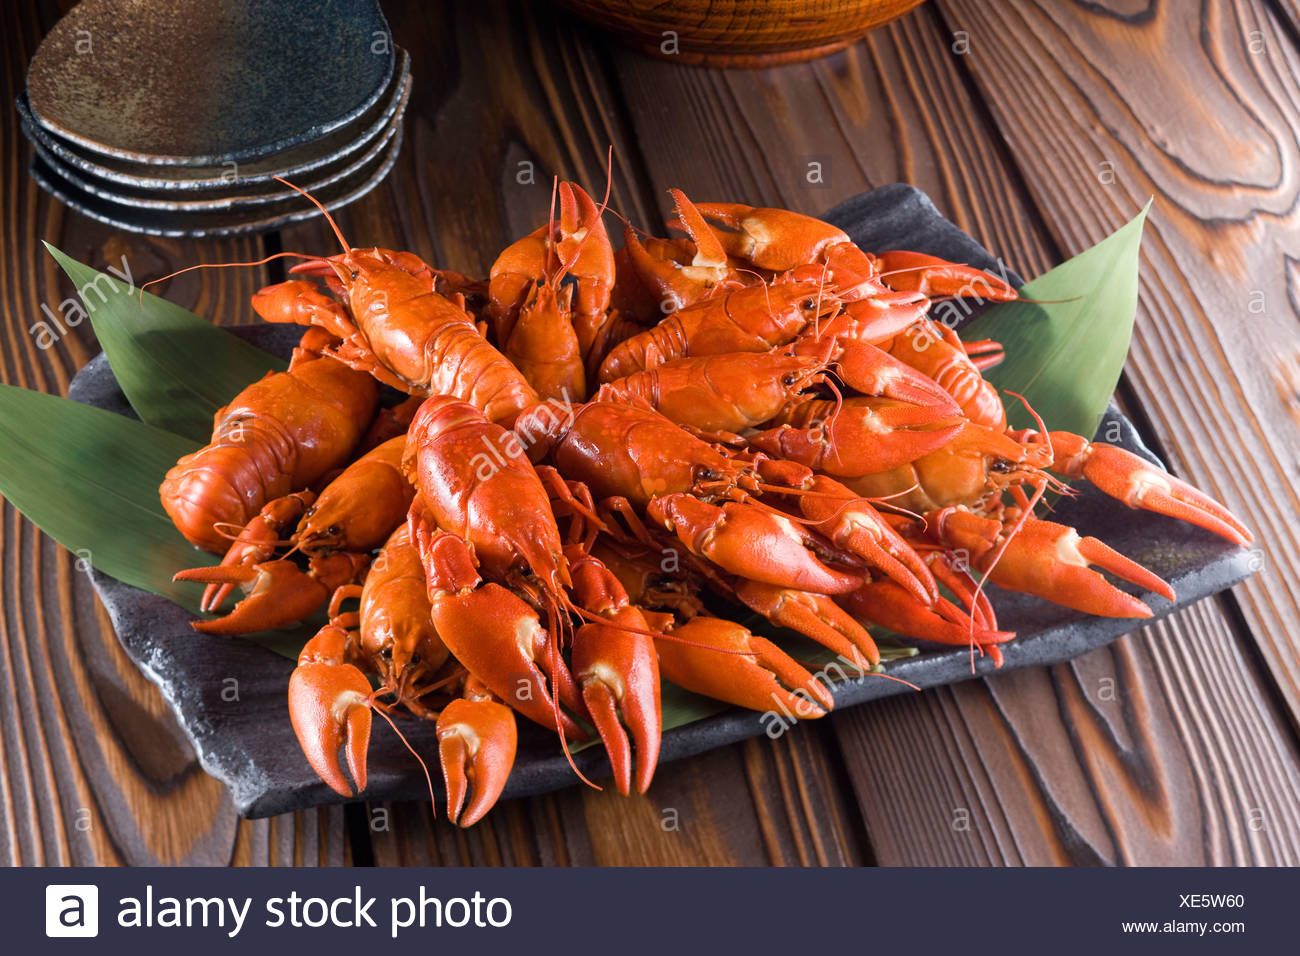 Boiled Signal Crayfish - Stock Image